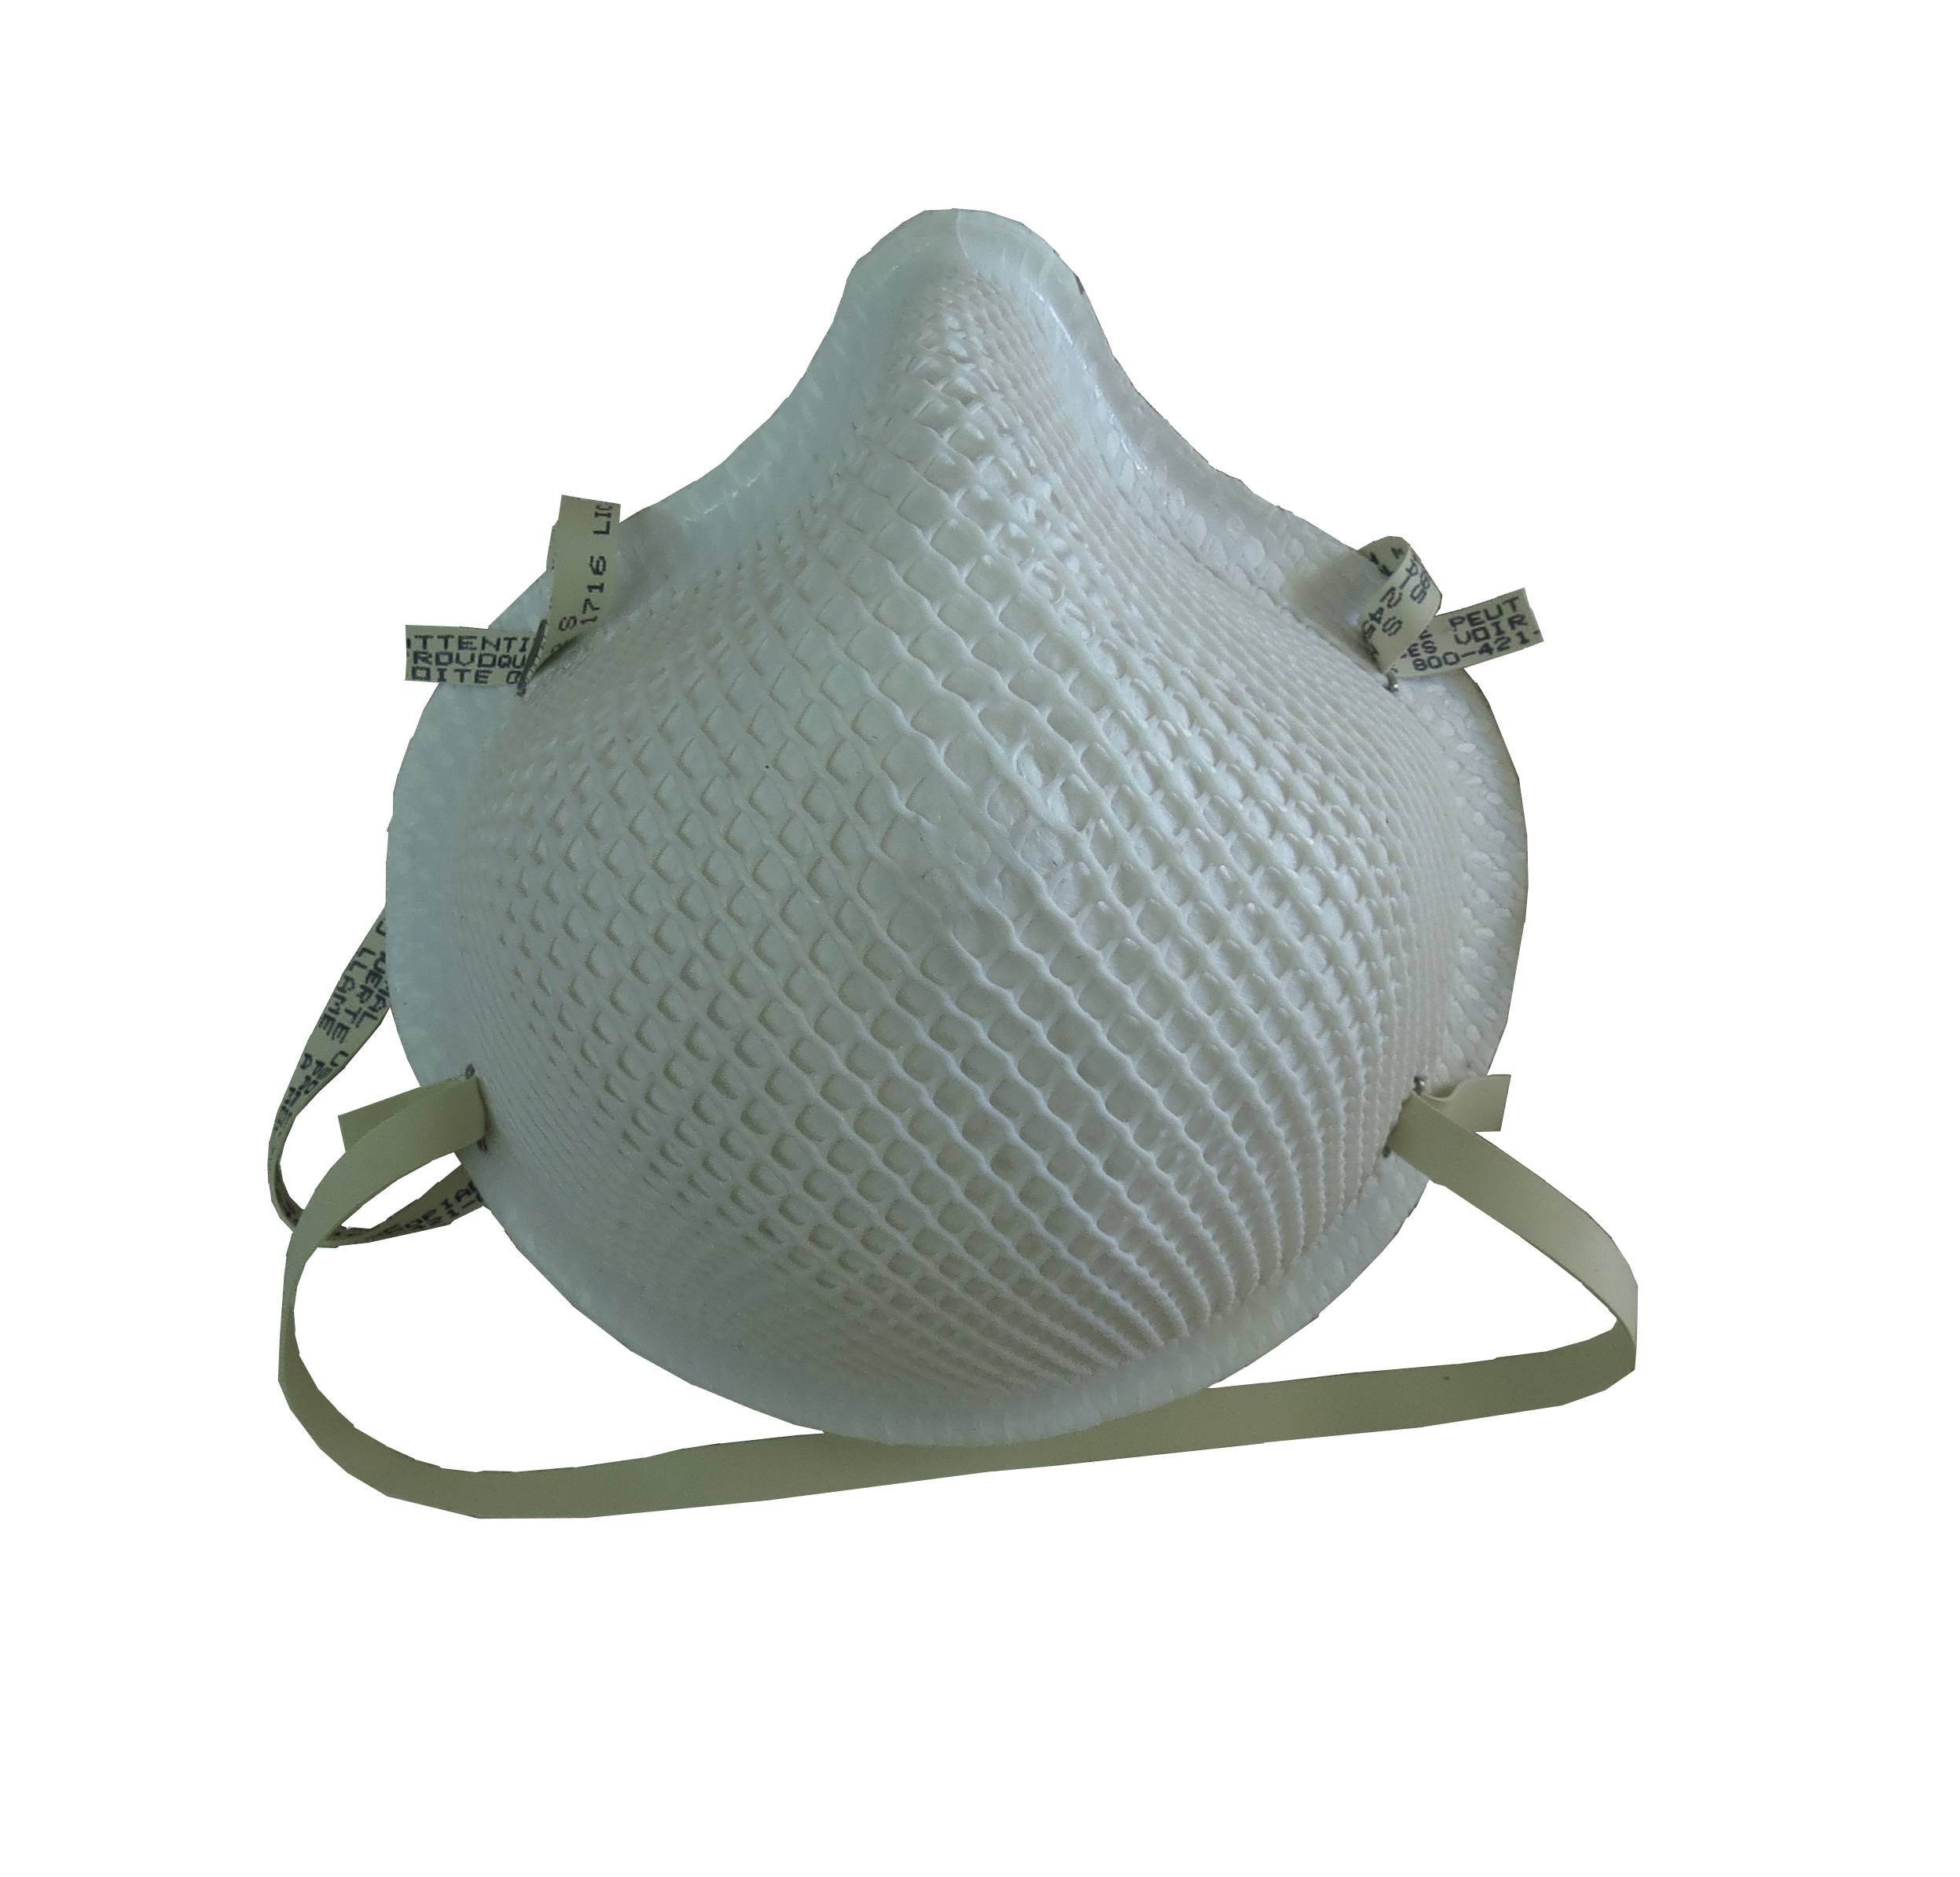 Based For box Moldex Particles Size Box Solids Respirator Per Small amp; Sold From Units Protection Particulate 20 Non-oil N95